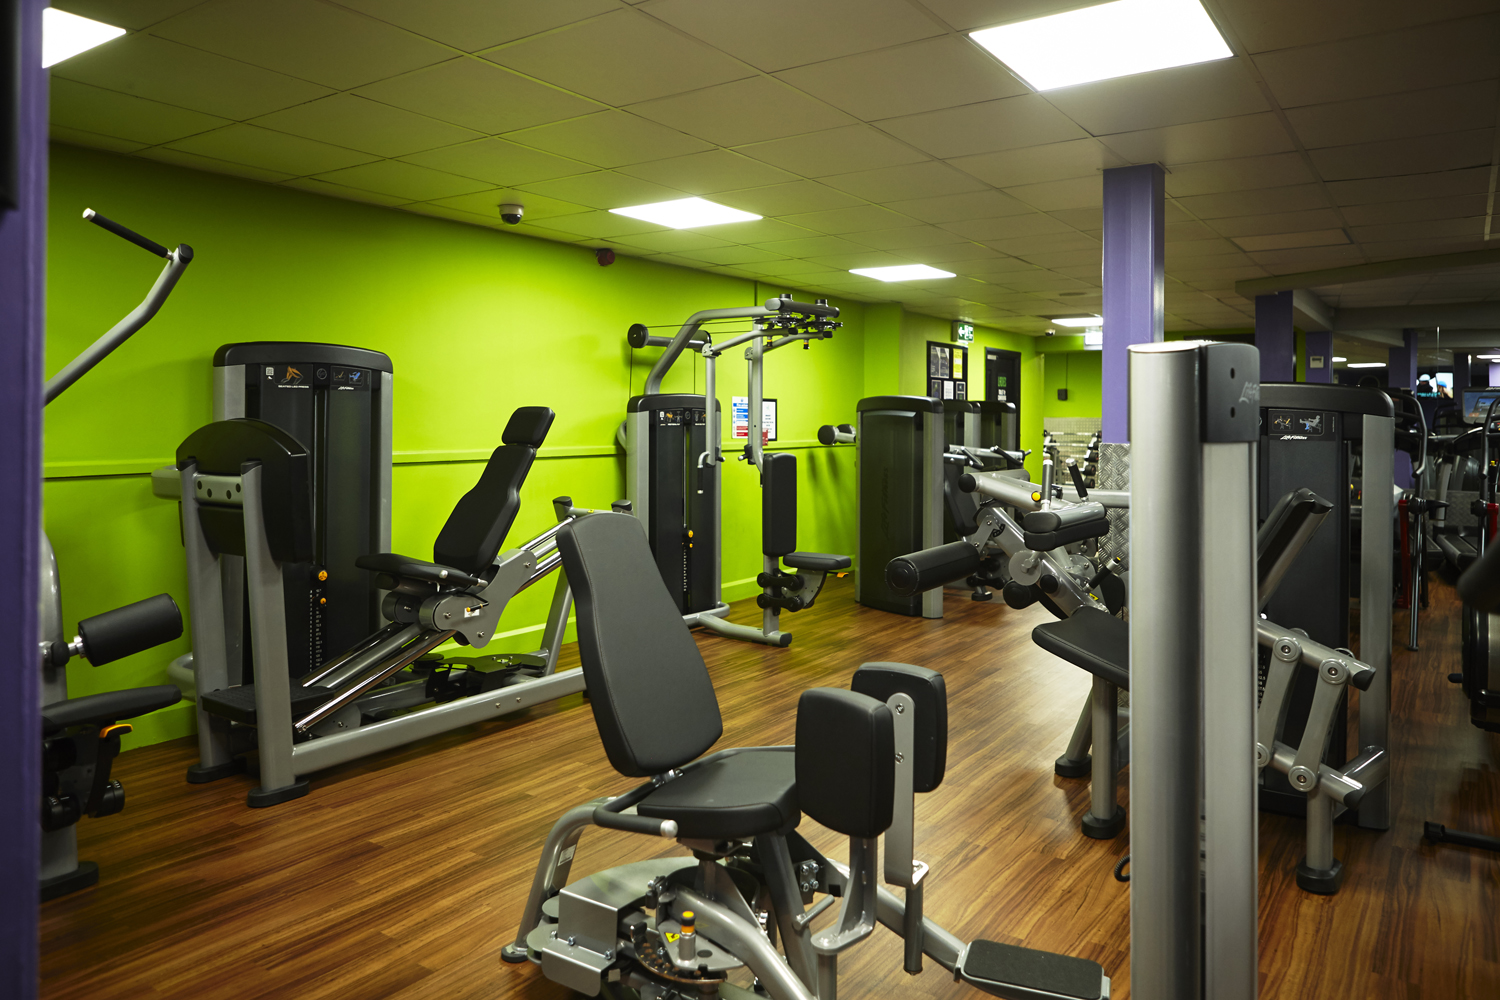 Uxbridge - Best Value Gym From Just £14 99 - Simply Gym